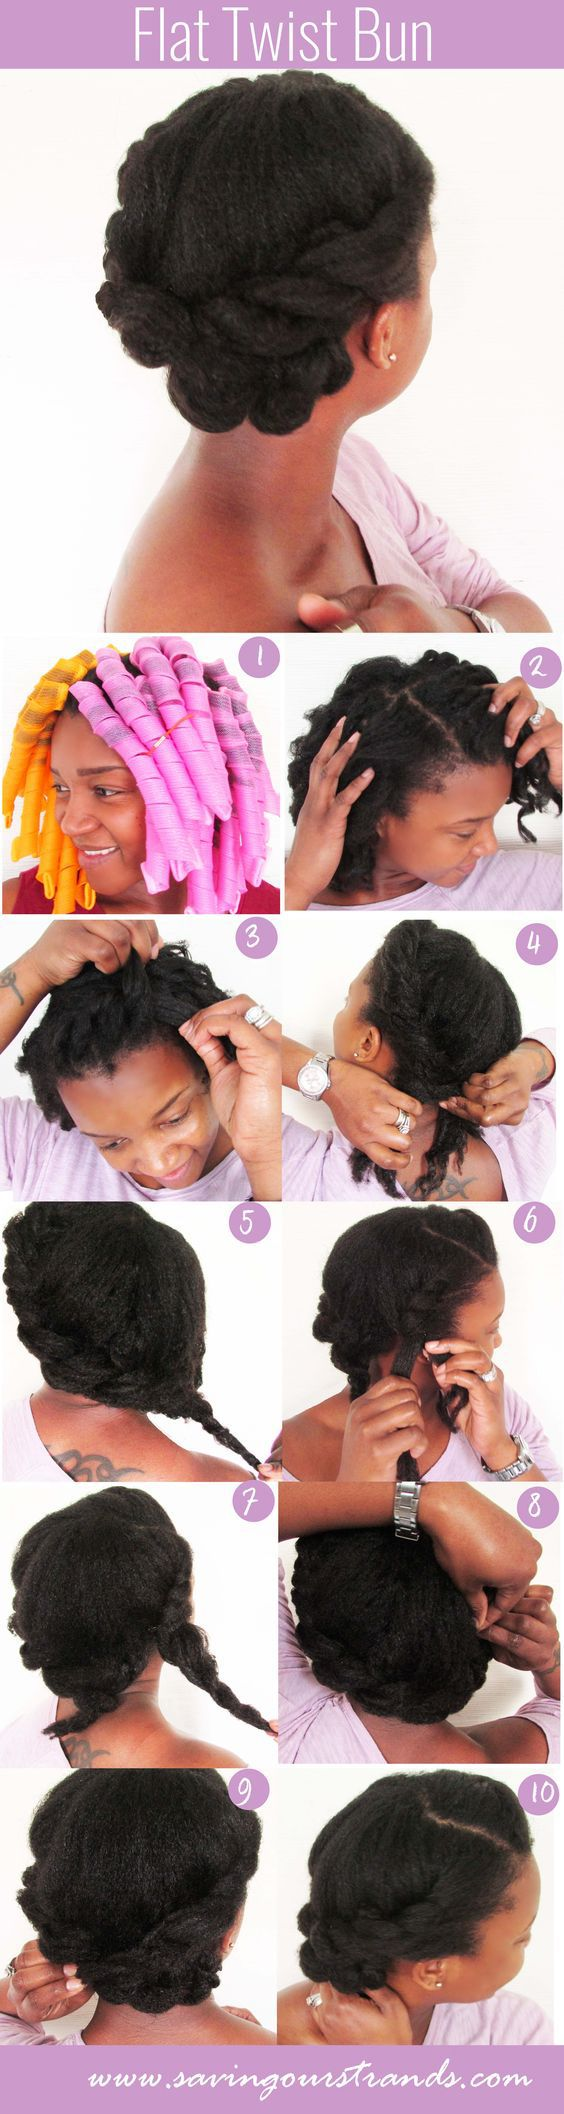 If you're looking for the perfect prom hairstyle, there is certainly no shortage of options. There are pretty boho styles for those who want something more relaxed, unique retro styles for anyone who wants a more vintage vibe, and fun ways to style Afro-textured hair. All of these are great, but what if you just want something, well… simple? You know, nothing too crazy or trendy or out there, but something more classically beautiful – elegant, if you will – that feels timeless.